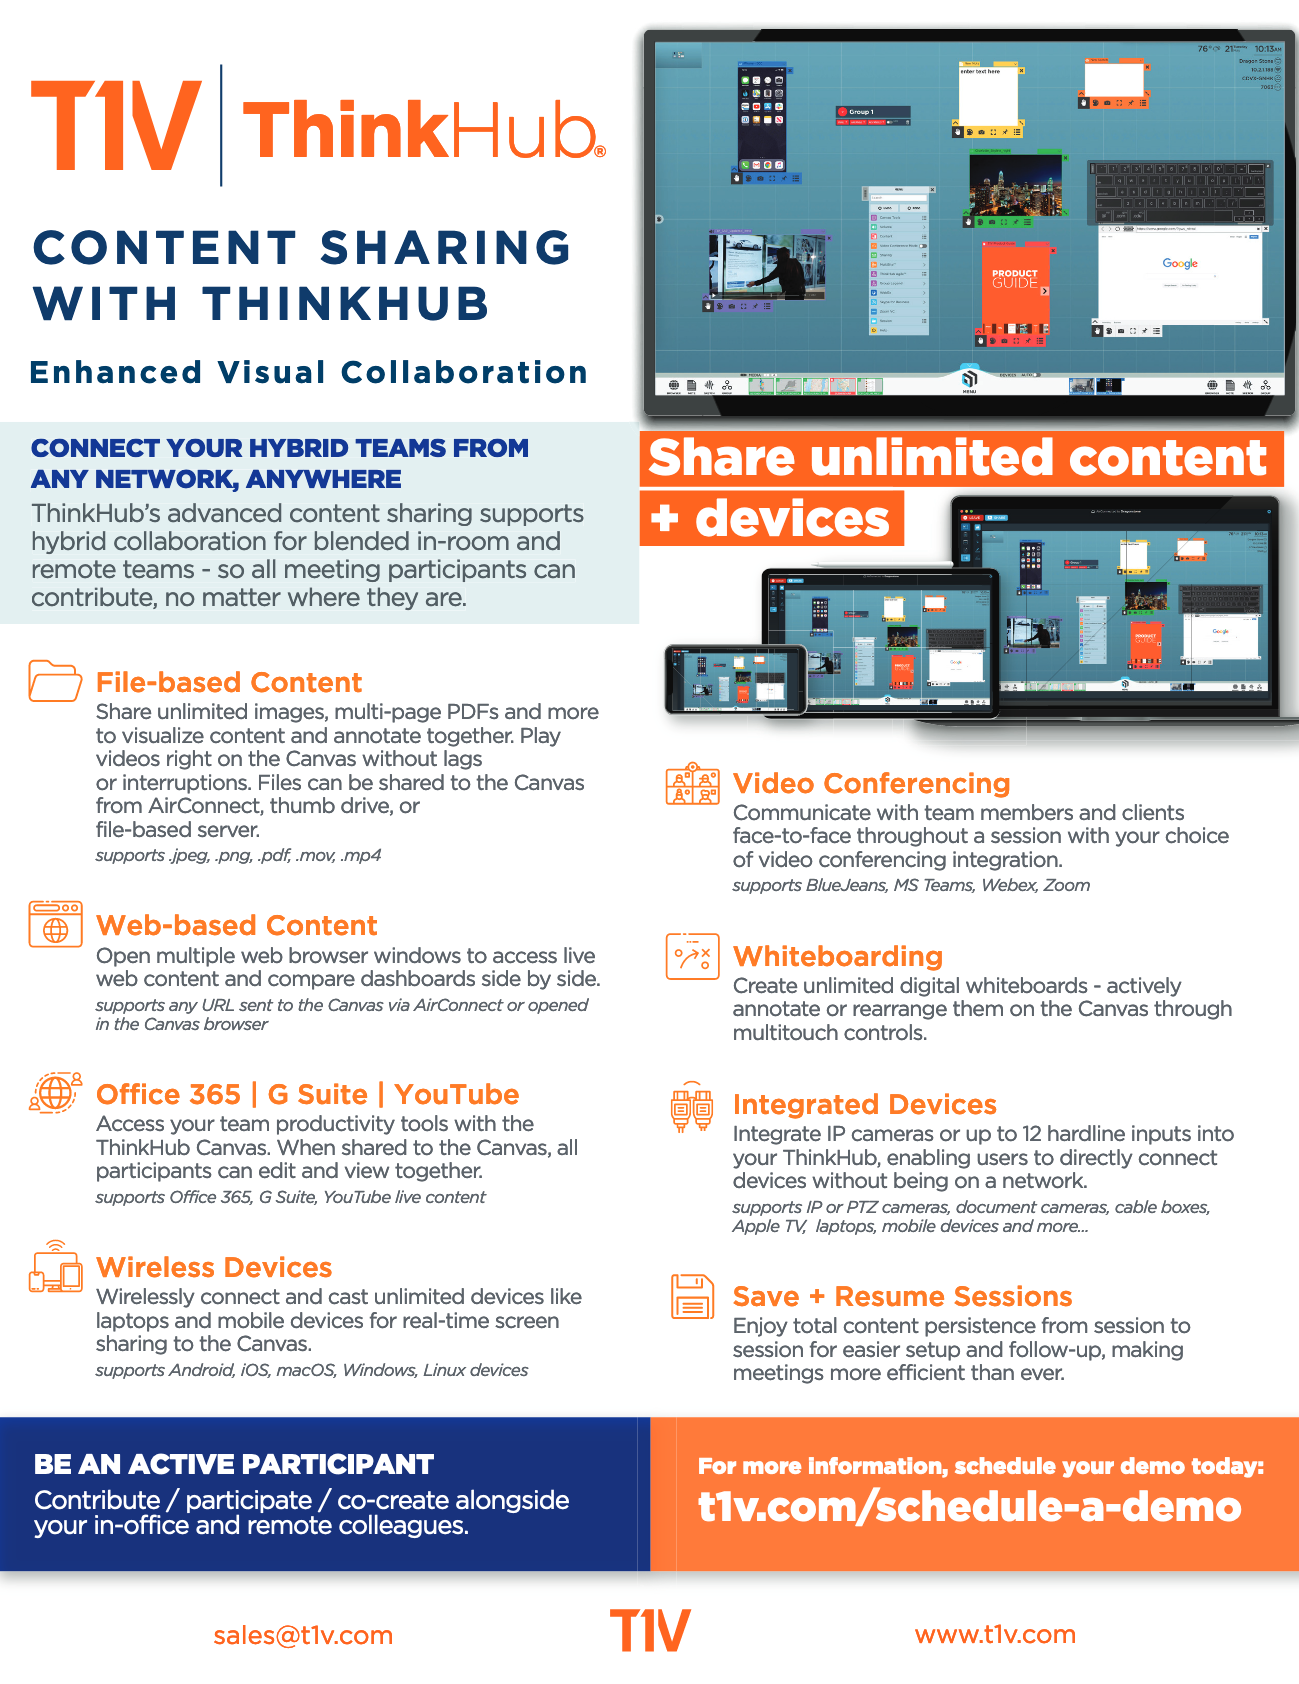 Advanced Content Sharing With ThinkHub